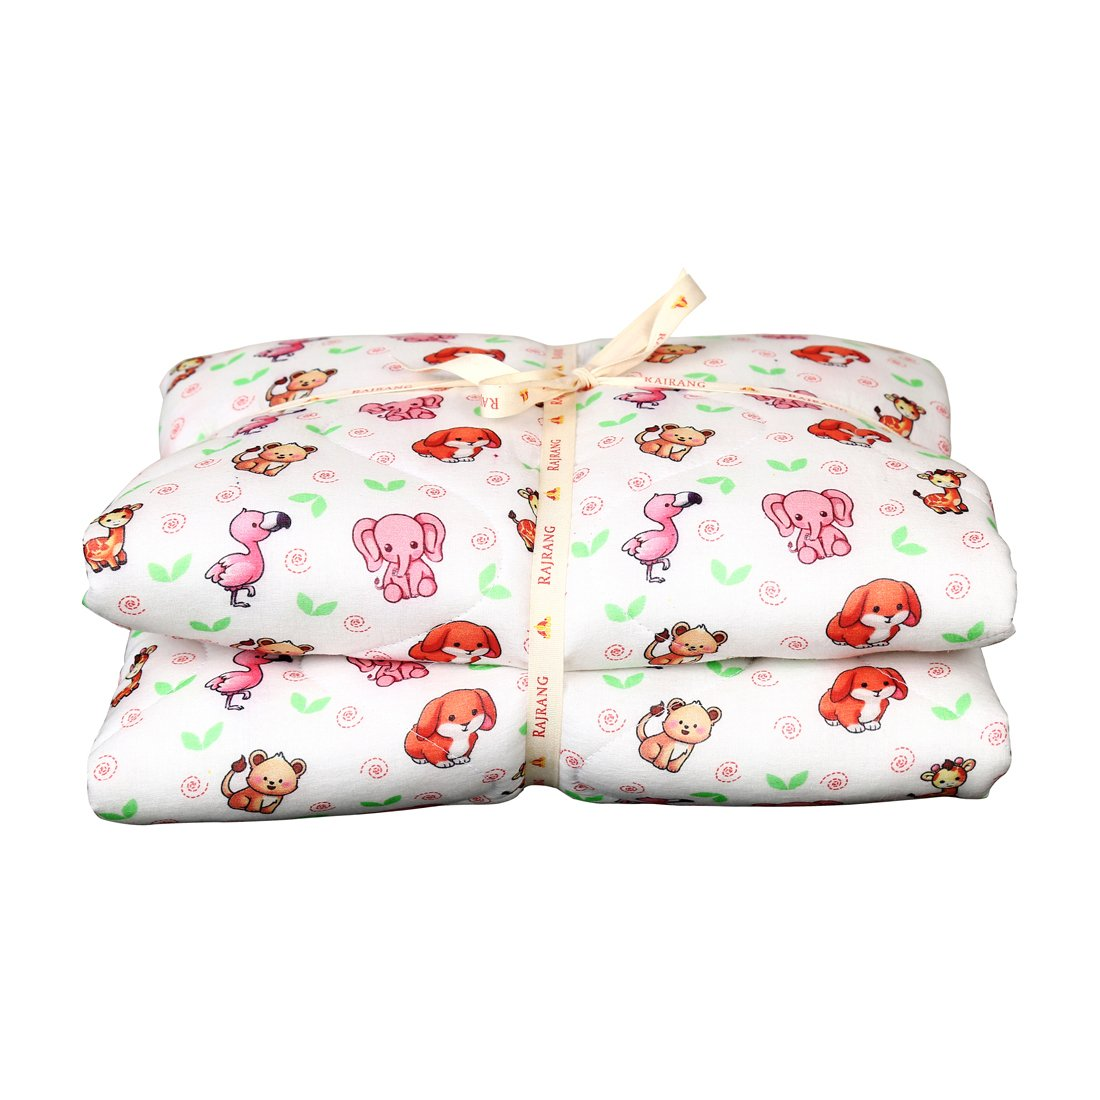 White and Pink Baby Quilt - Warm and Snuggly Toddler Blanket Animal Printed Crib Comforter for New Born Boys & Girls Bed Covers by RAJRANG (Image #1)